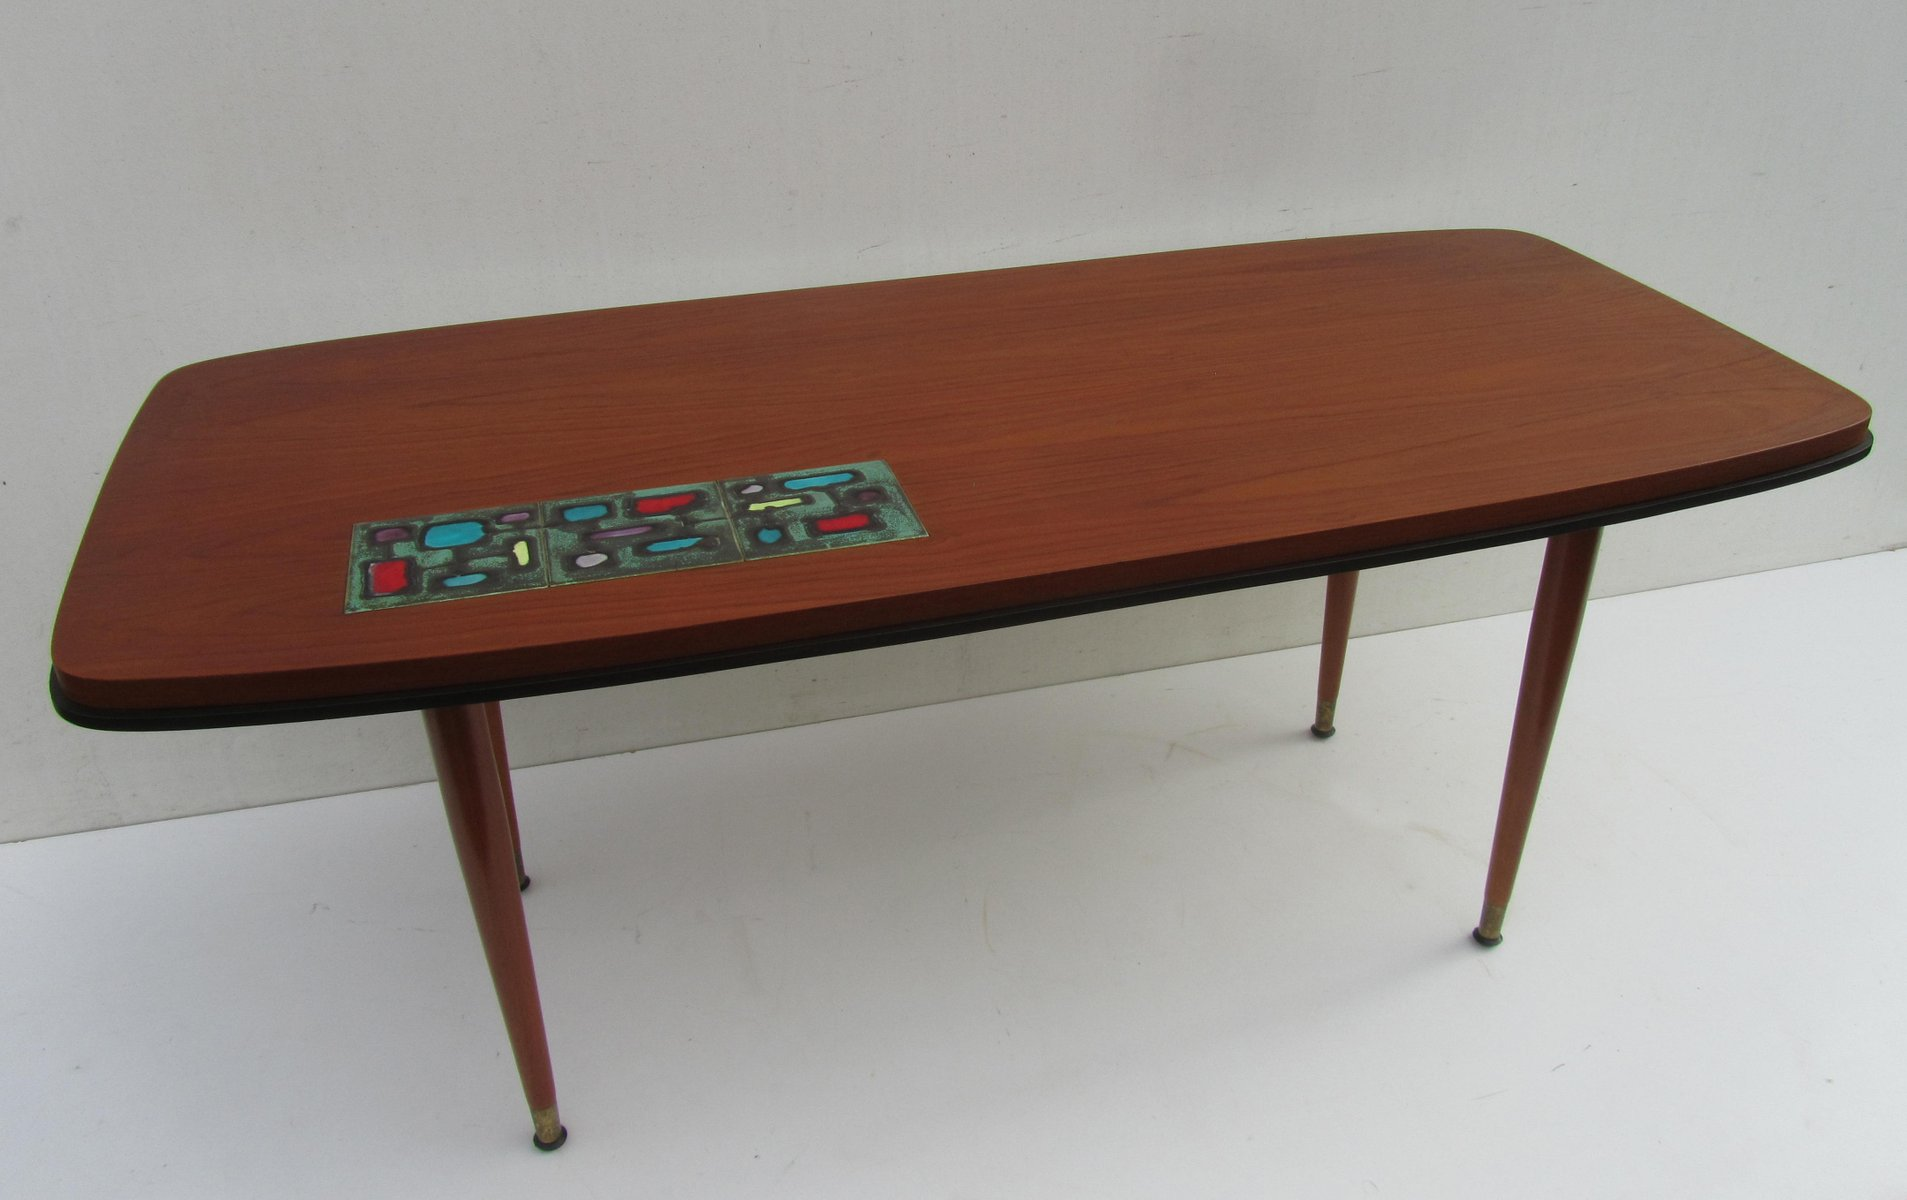 table basse vintage carrel e en c ramique et teck 1950s. Black Bedroom Furniture Sets. Home Design Ideas